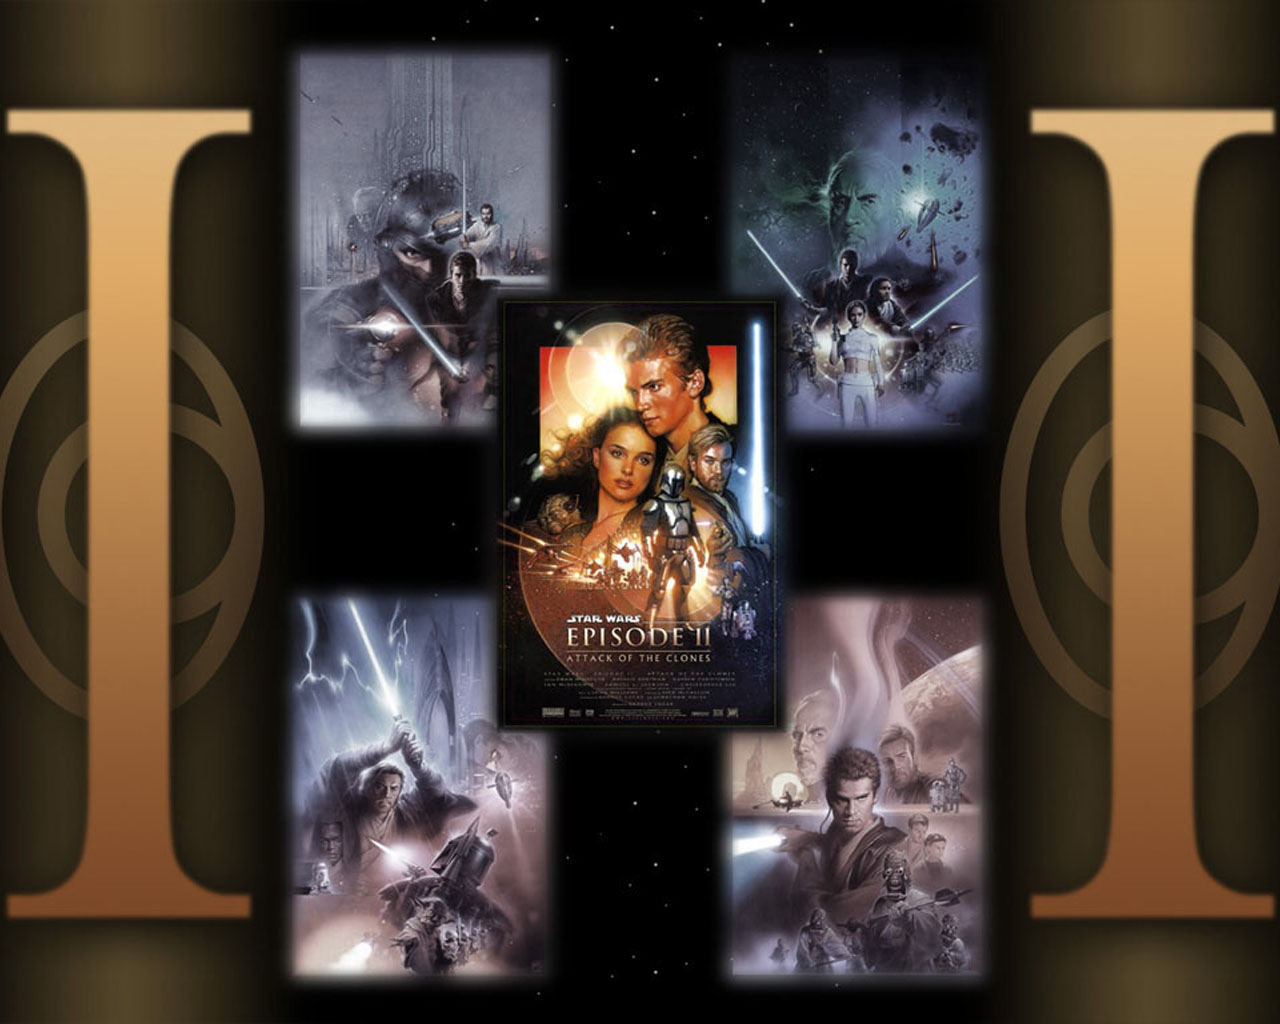 Star Wars Attack of the Clones image star wars attack of the clones 36233816 1280 1024